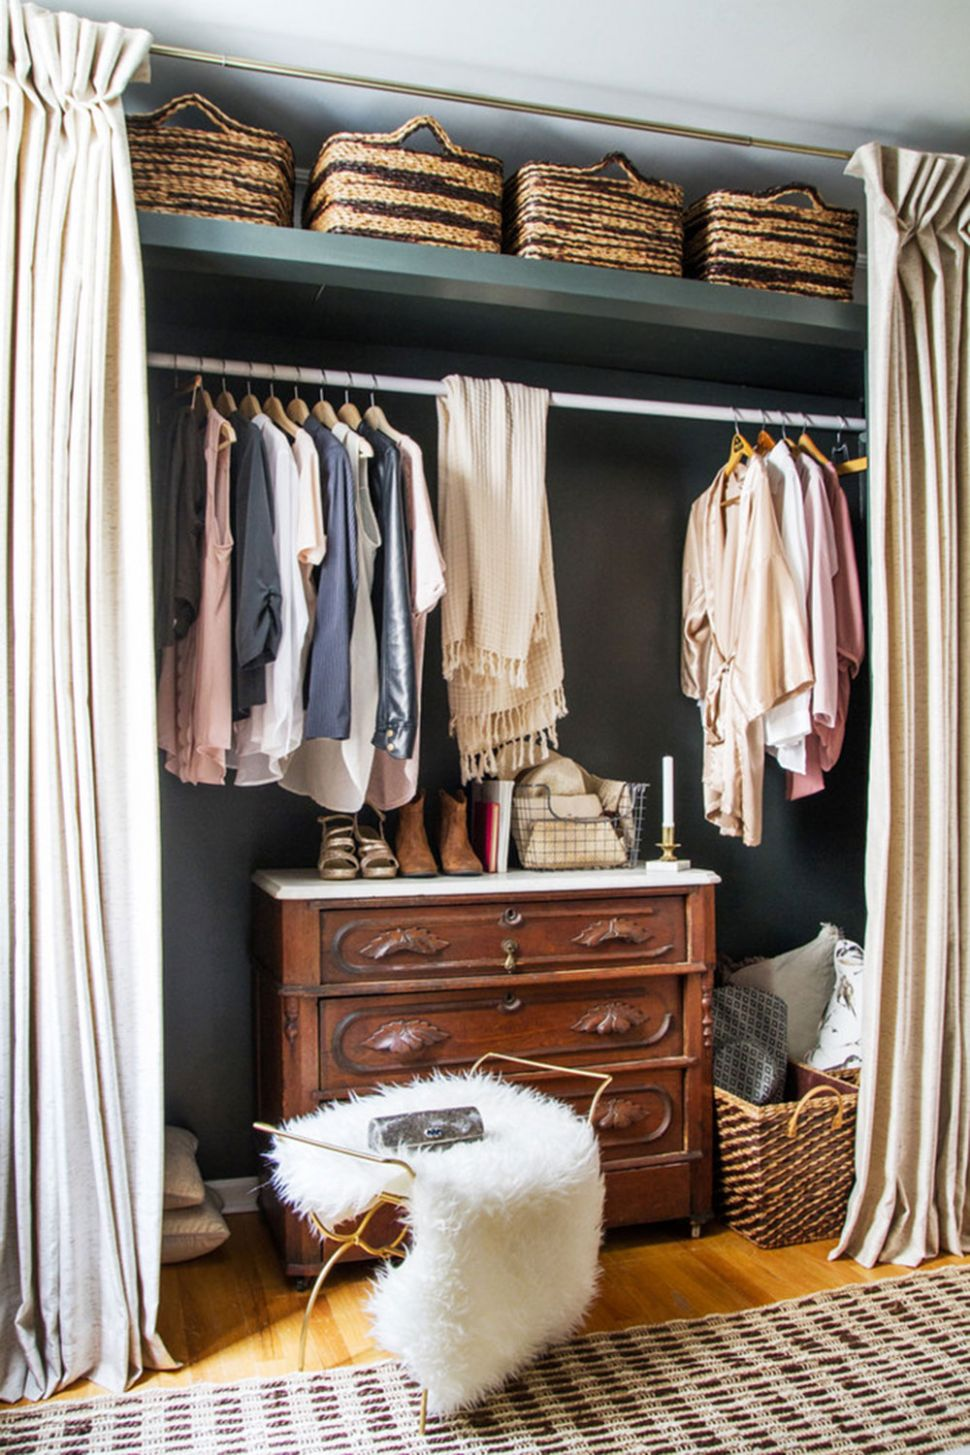 How to cover a closet without doors (Inexpensive options) - closet ideas without doors